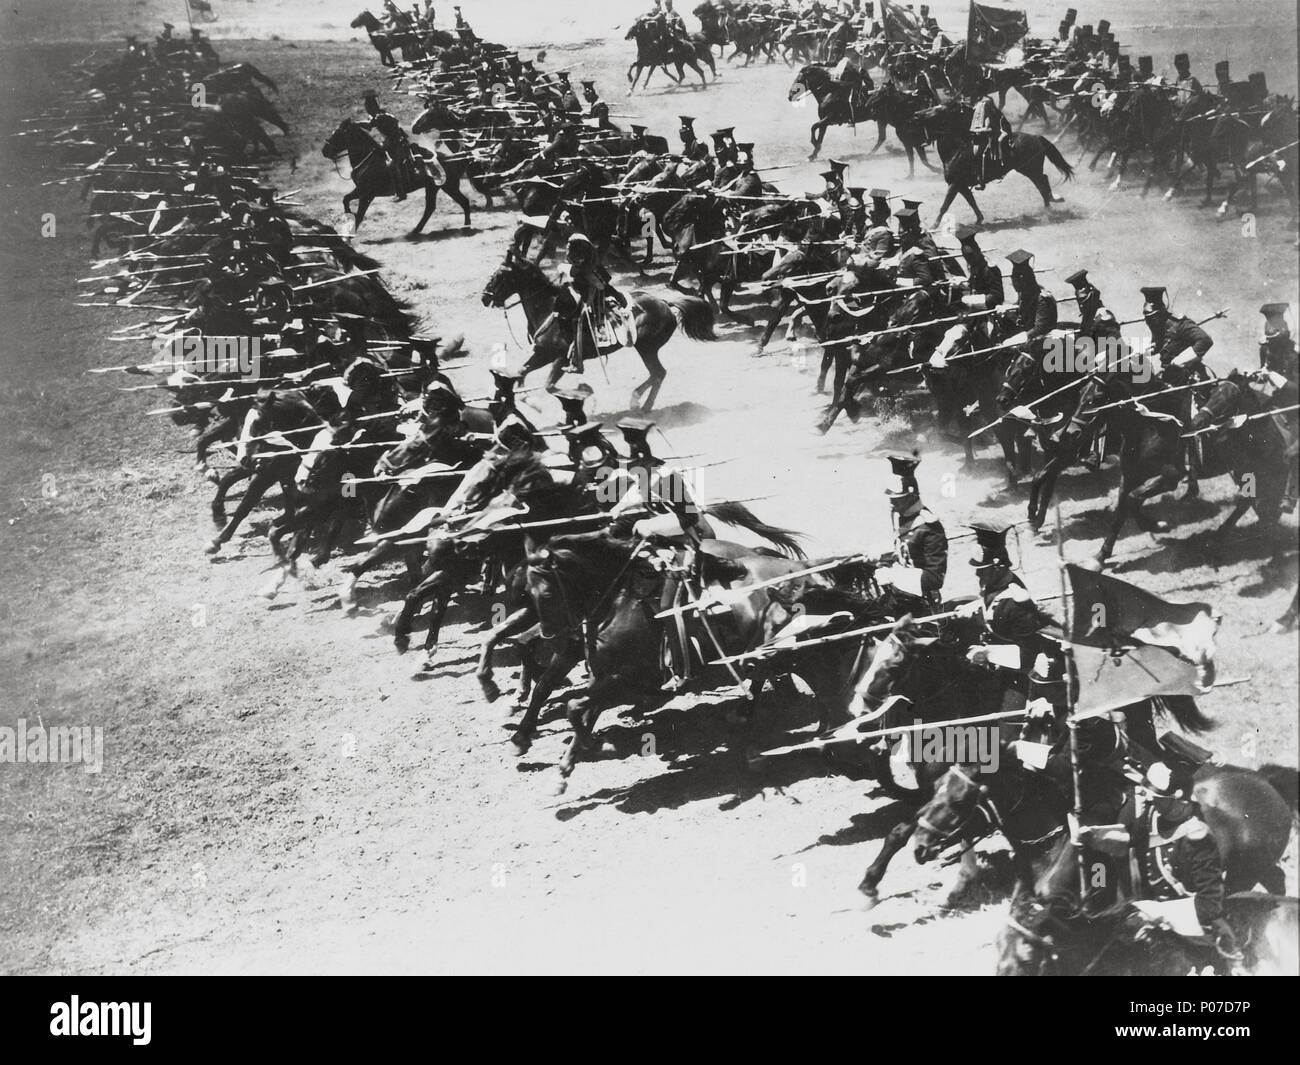 Original Film Title: THE CHARGE OF THE LIGHT BRIGADE.  English Title: THE CHARGE OF THE LIGHT BRIGADE.  Film Director: MICHAEL CURTIZ.  Year: 1936. Credit: WARNER BROTHERS / Album - Stock Image